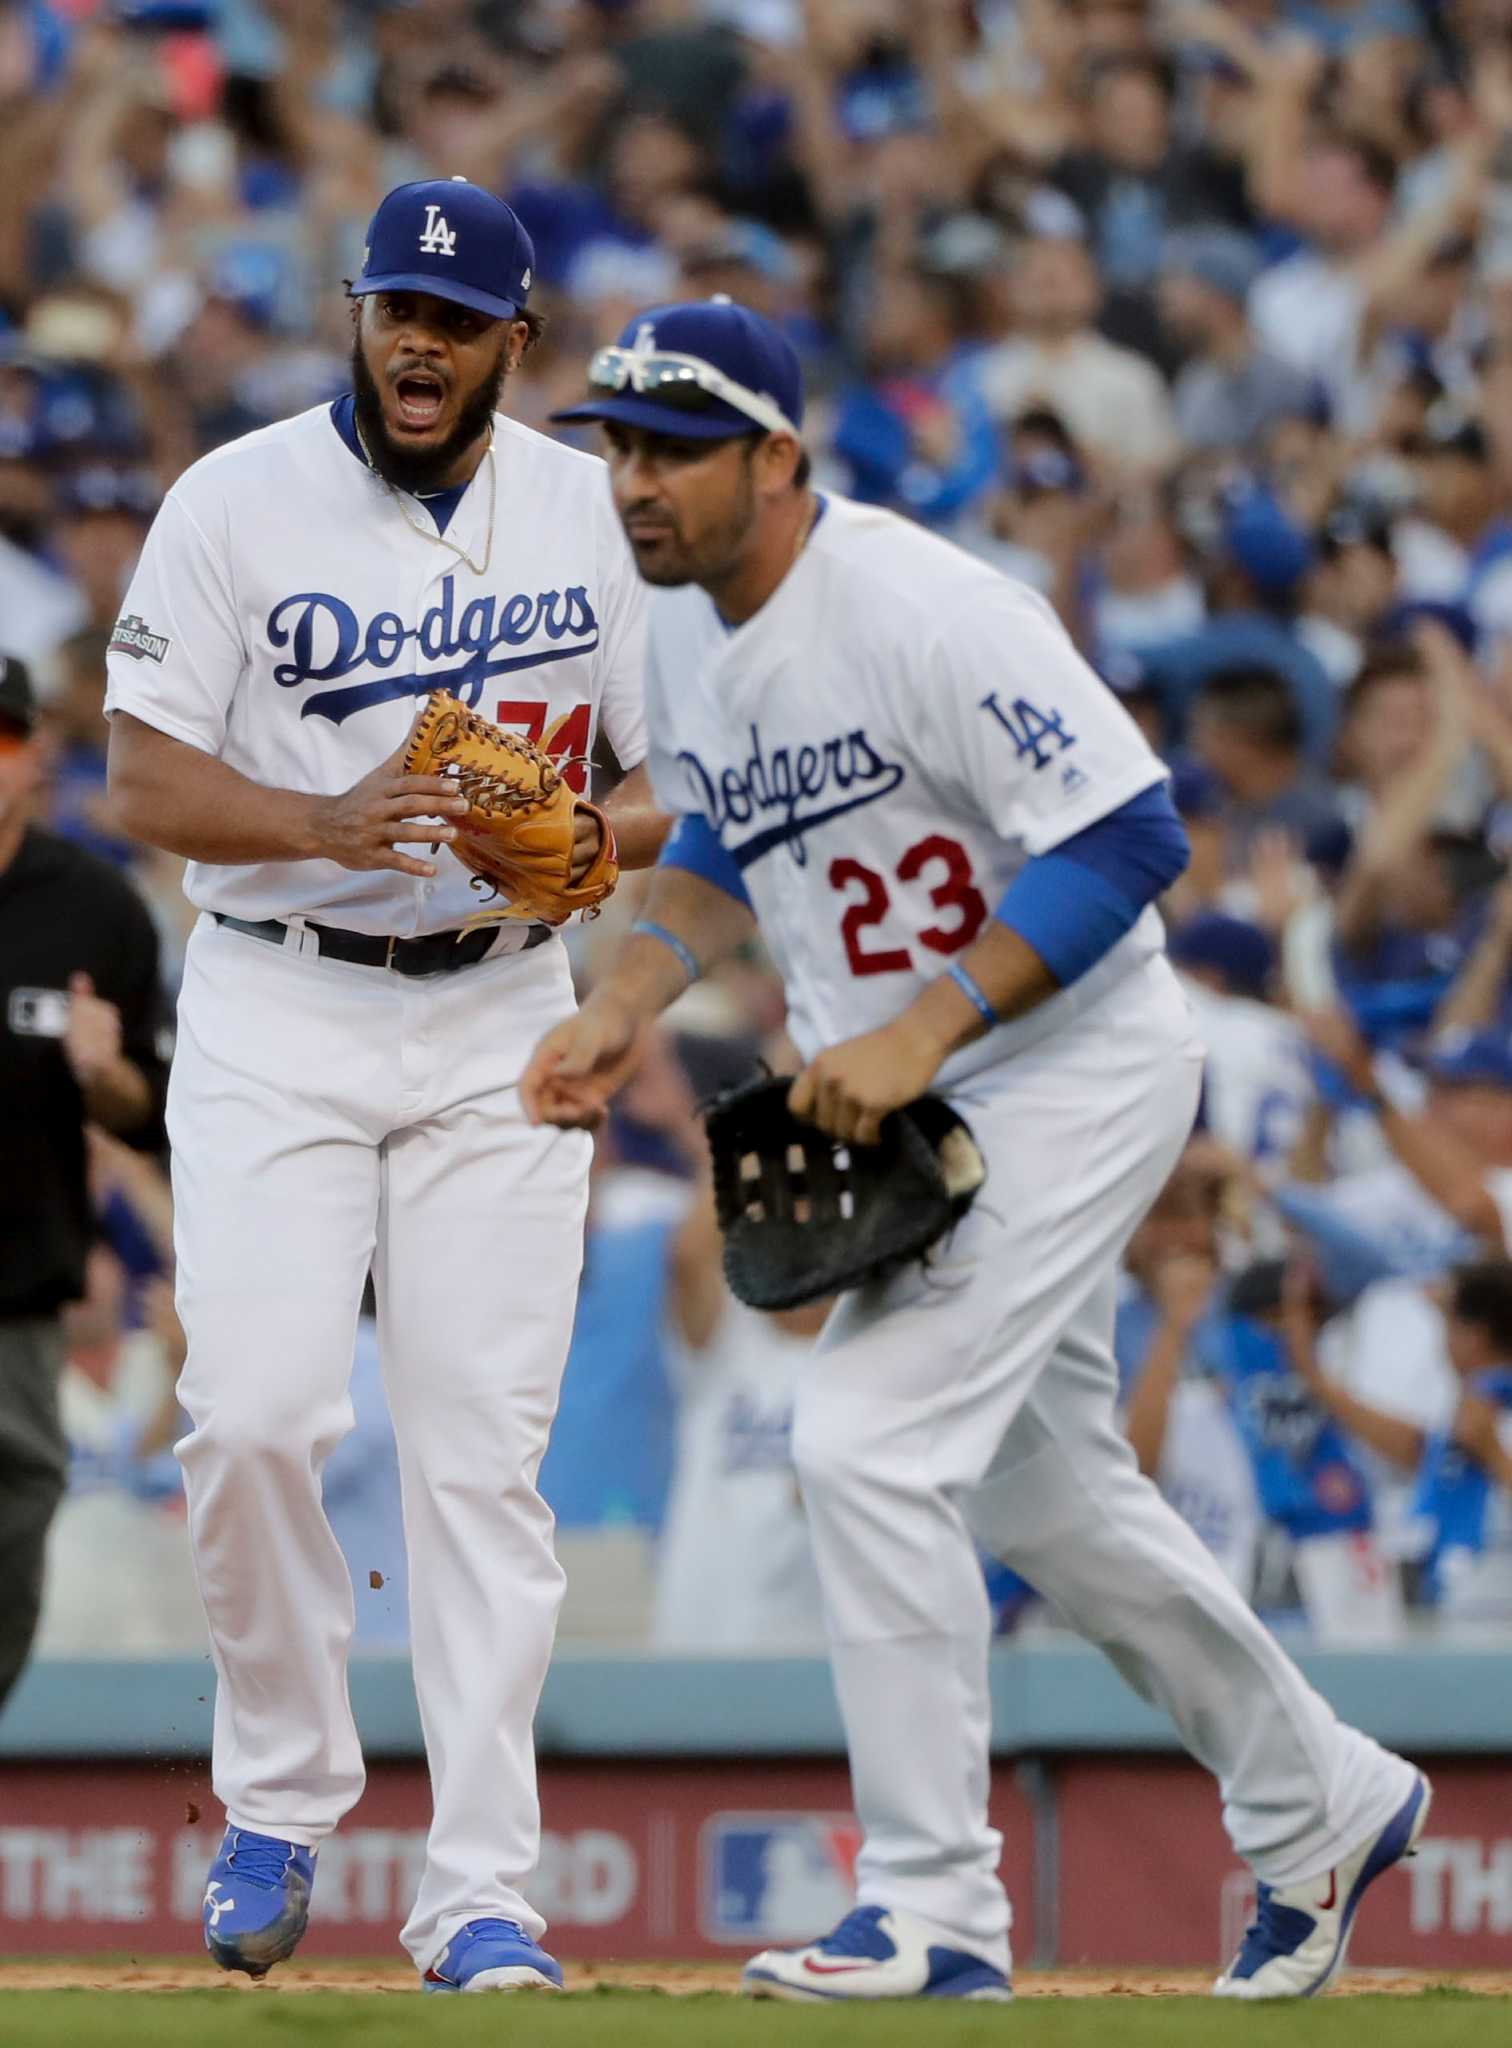 4db9a8145 Dodgers edge Nationals to force Game 5 - San Antonio Express-News